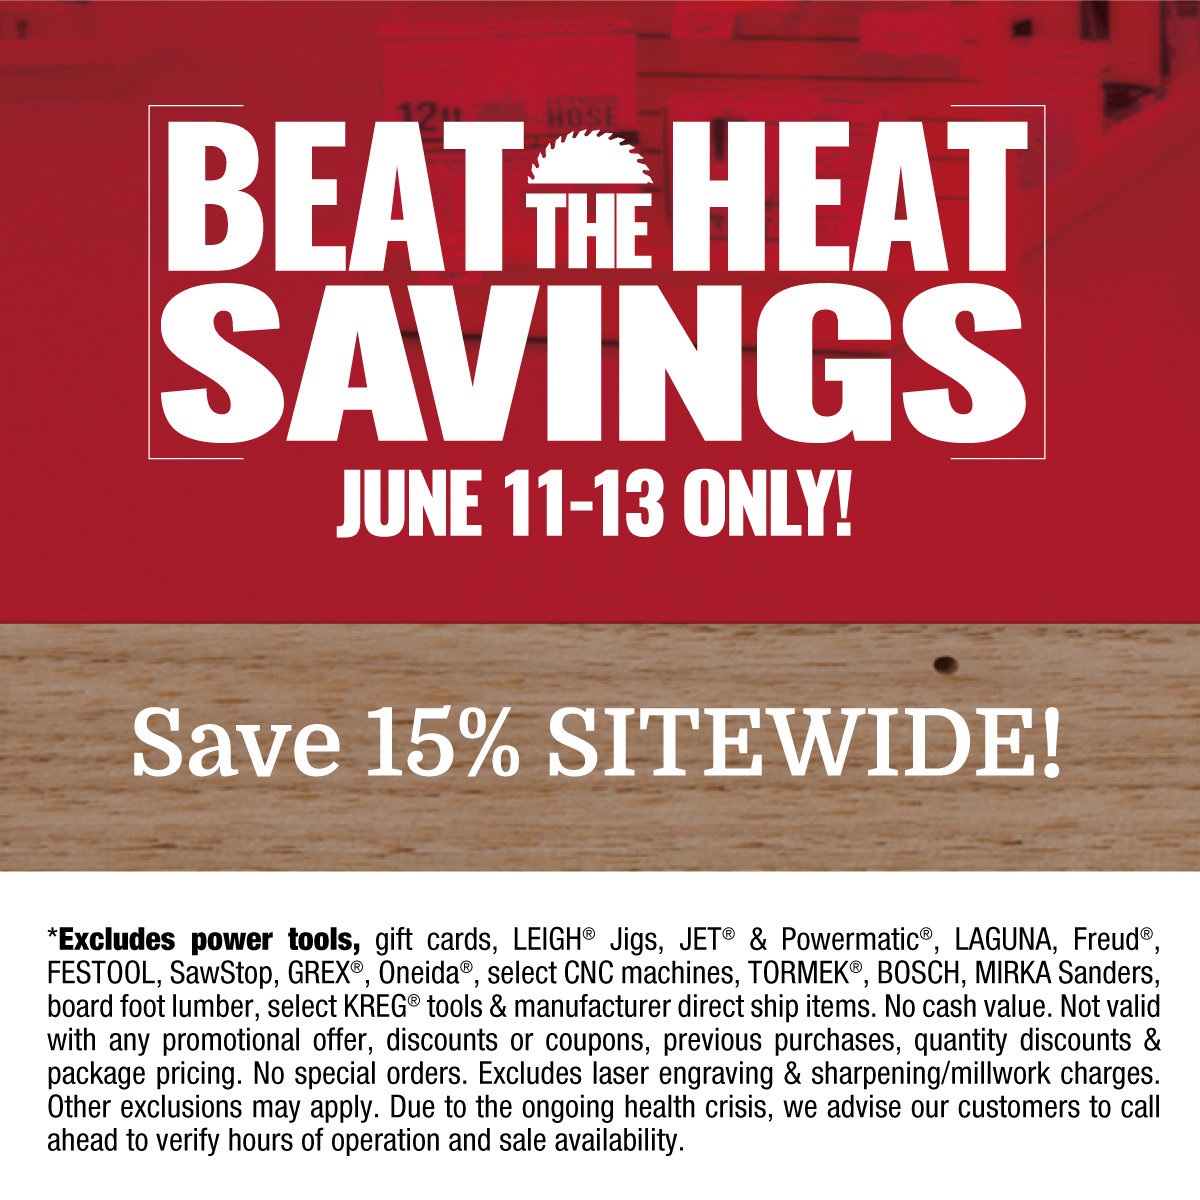 Beat the Heat Savings June 11-13 Only!